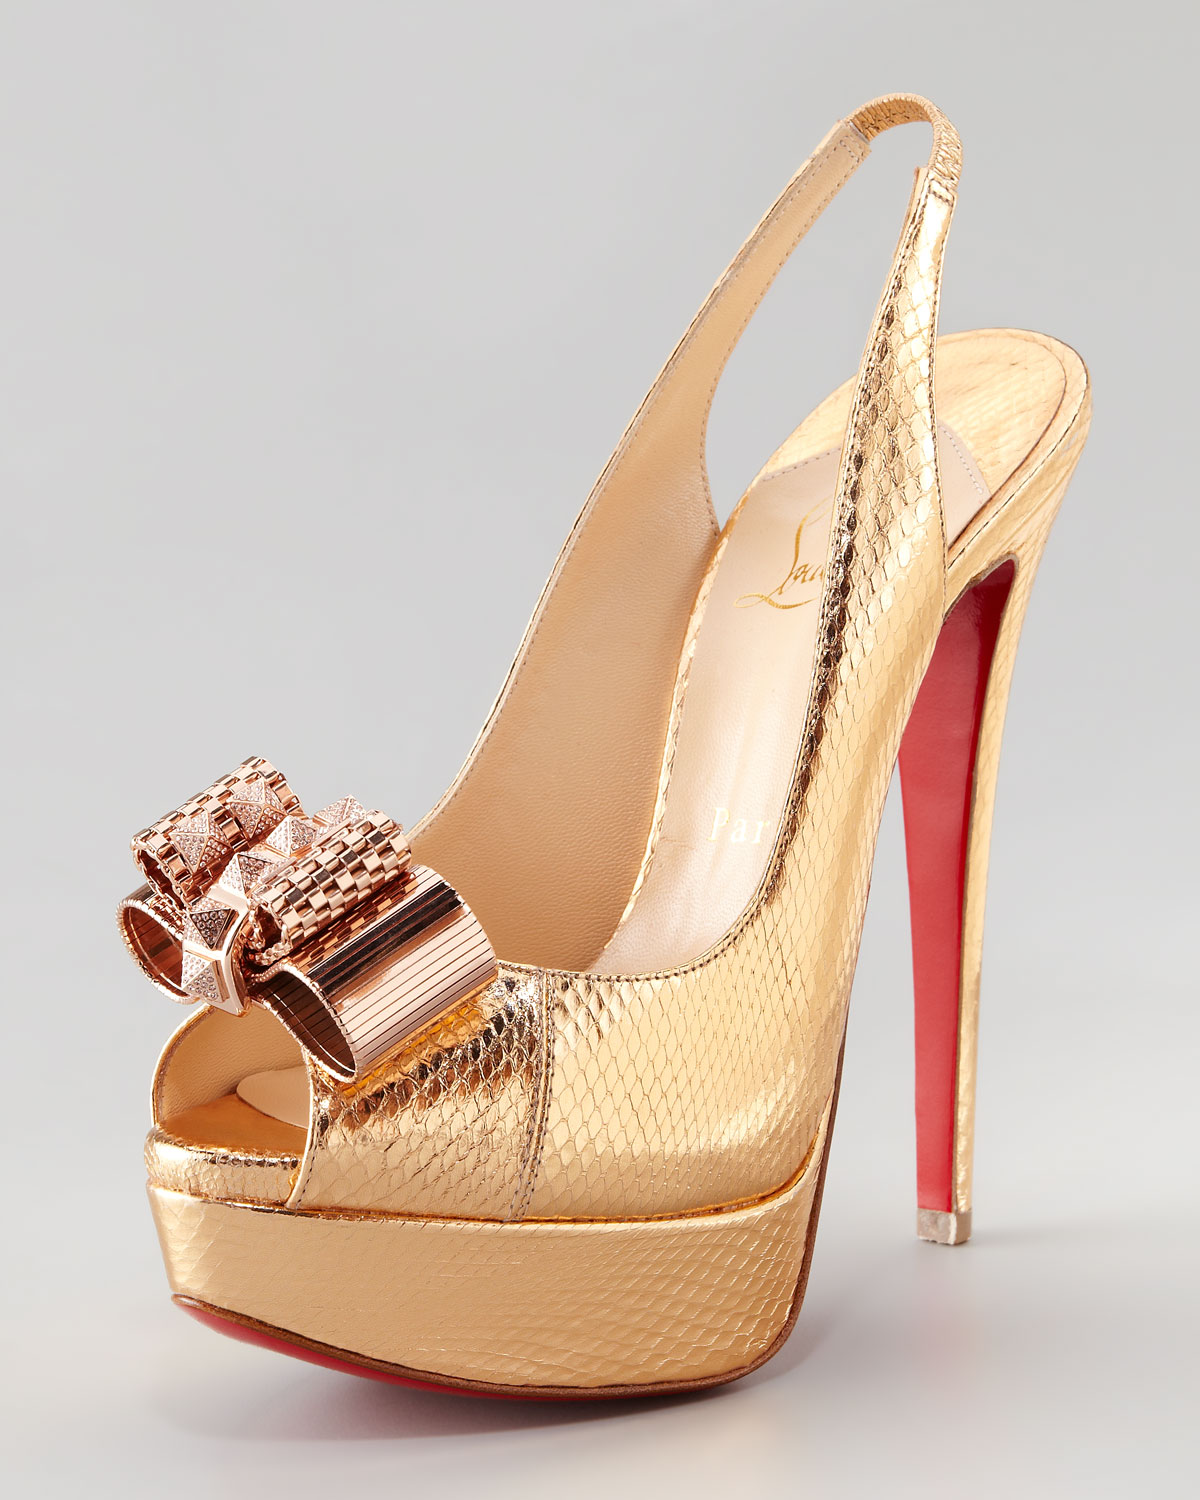 louboutin spiked sneakers - Christian louboutin Lady Peep Slingback Pump in Gold | Lyst